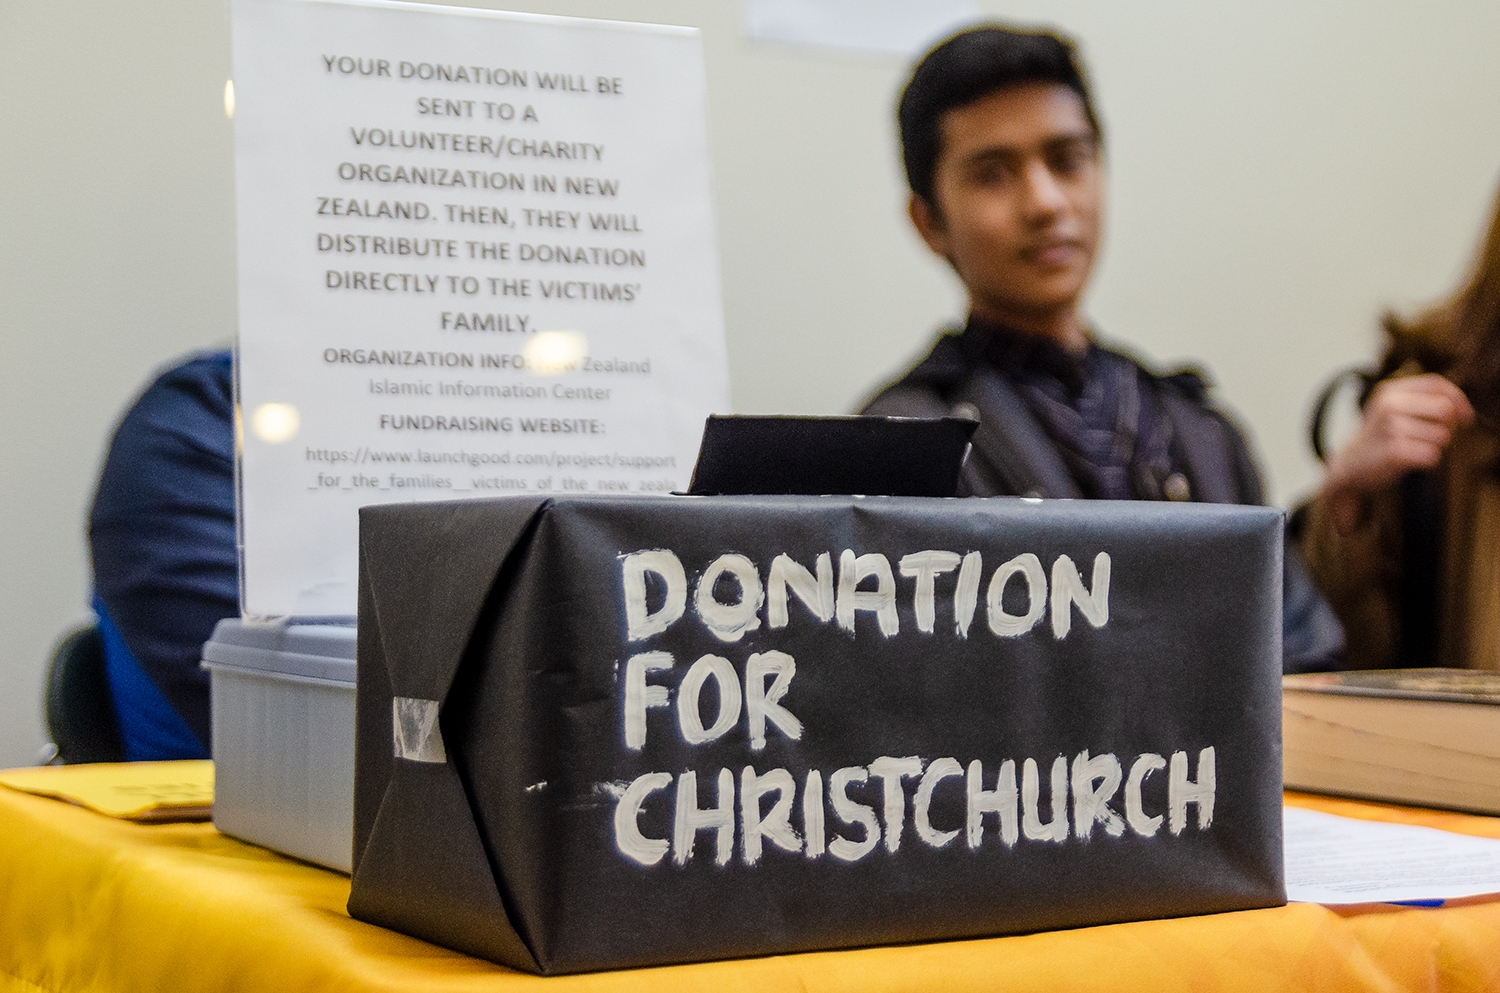 Donations+were+collected+and+sent+to+a+New+Zealand+organization%2C+which+will+distribute+the+funds+to+victims%27+families+and+help+cover+hospital+costs.